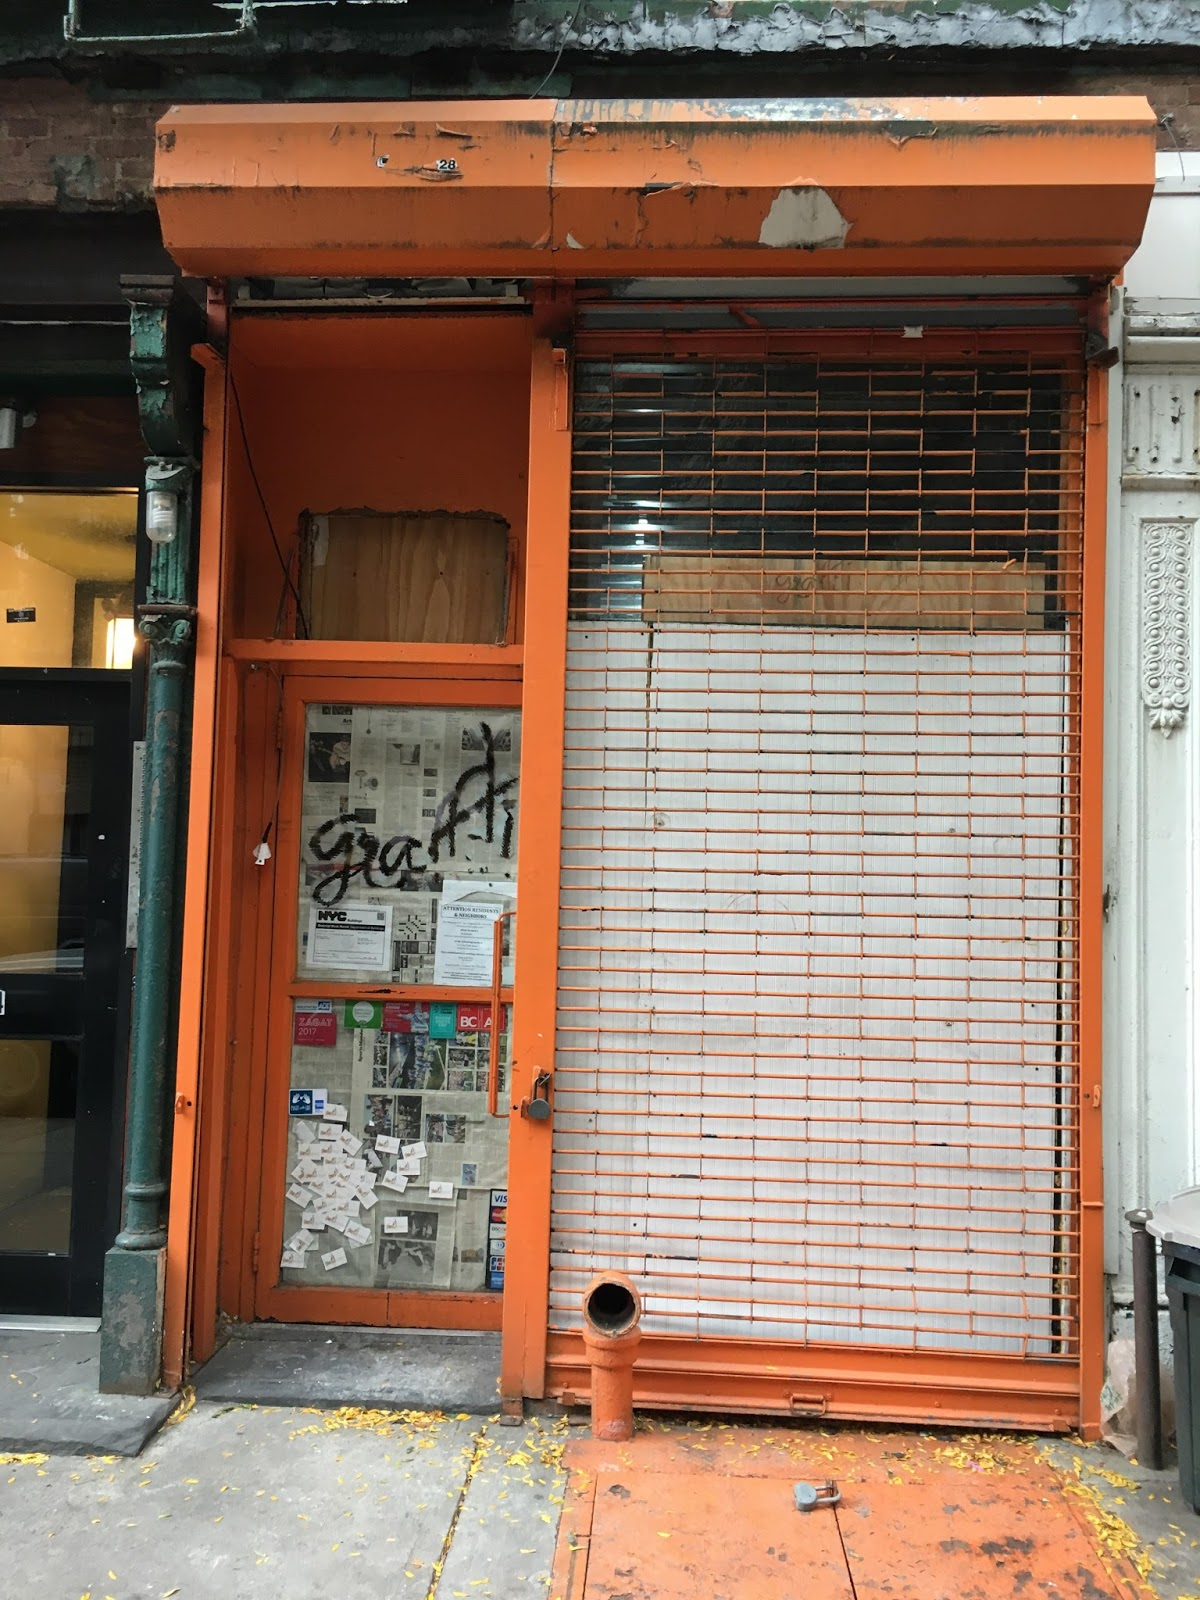 Ev Grieve Graffiti Space Giving Way To Greek Restaurant On 10th